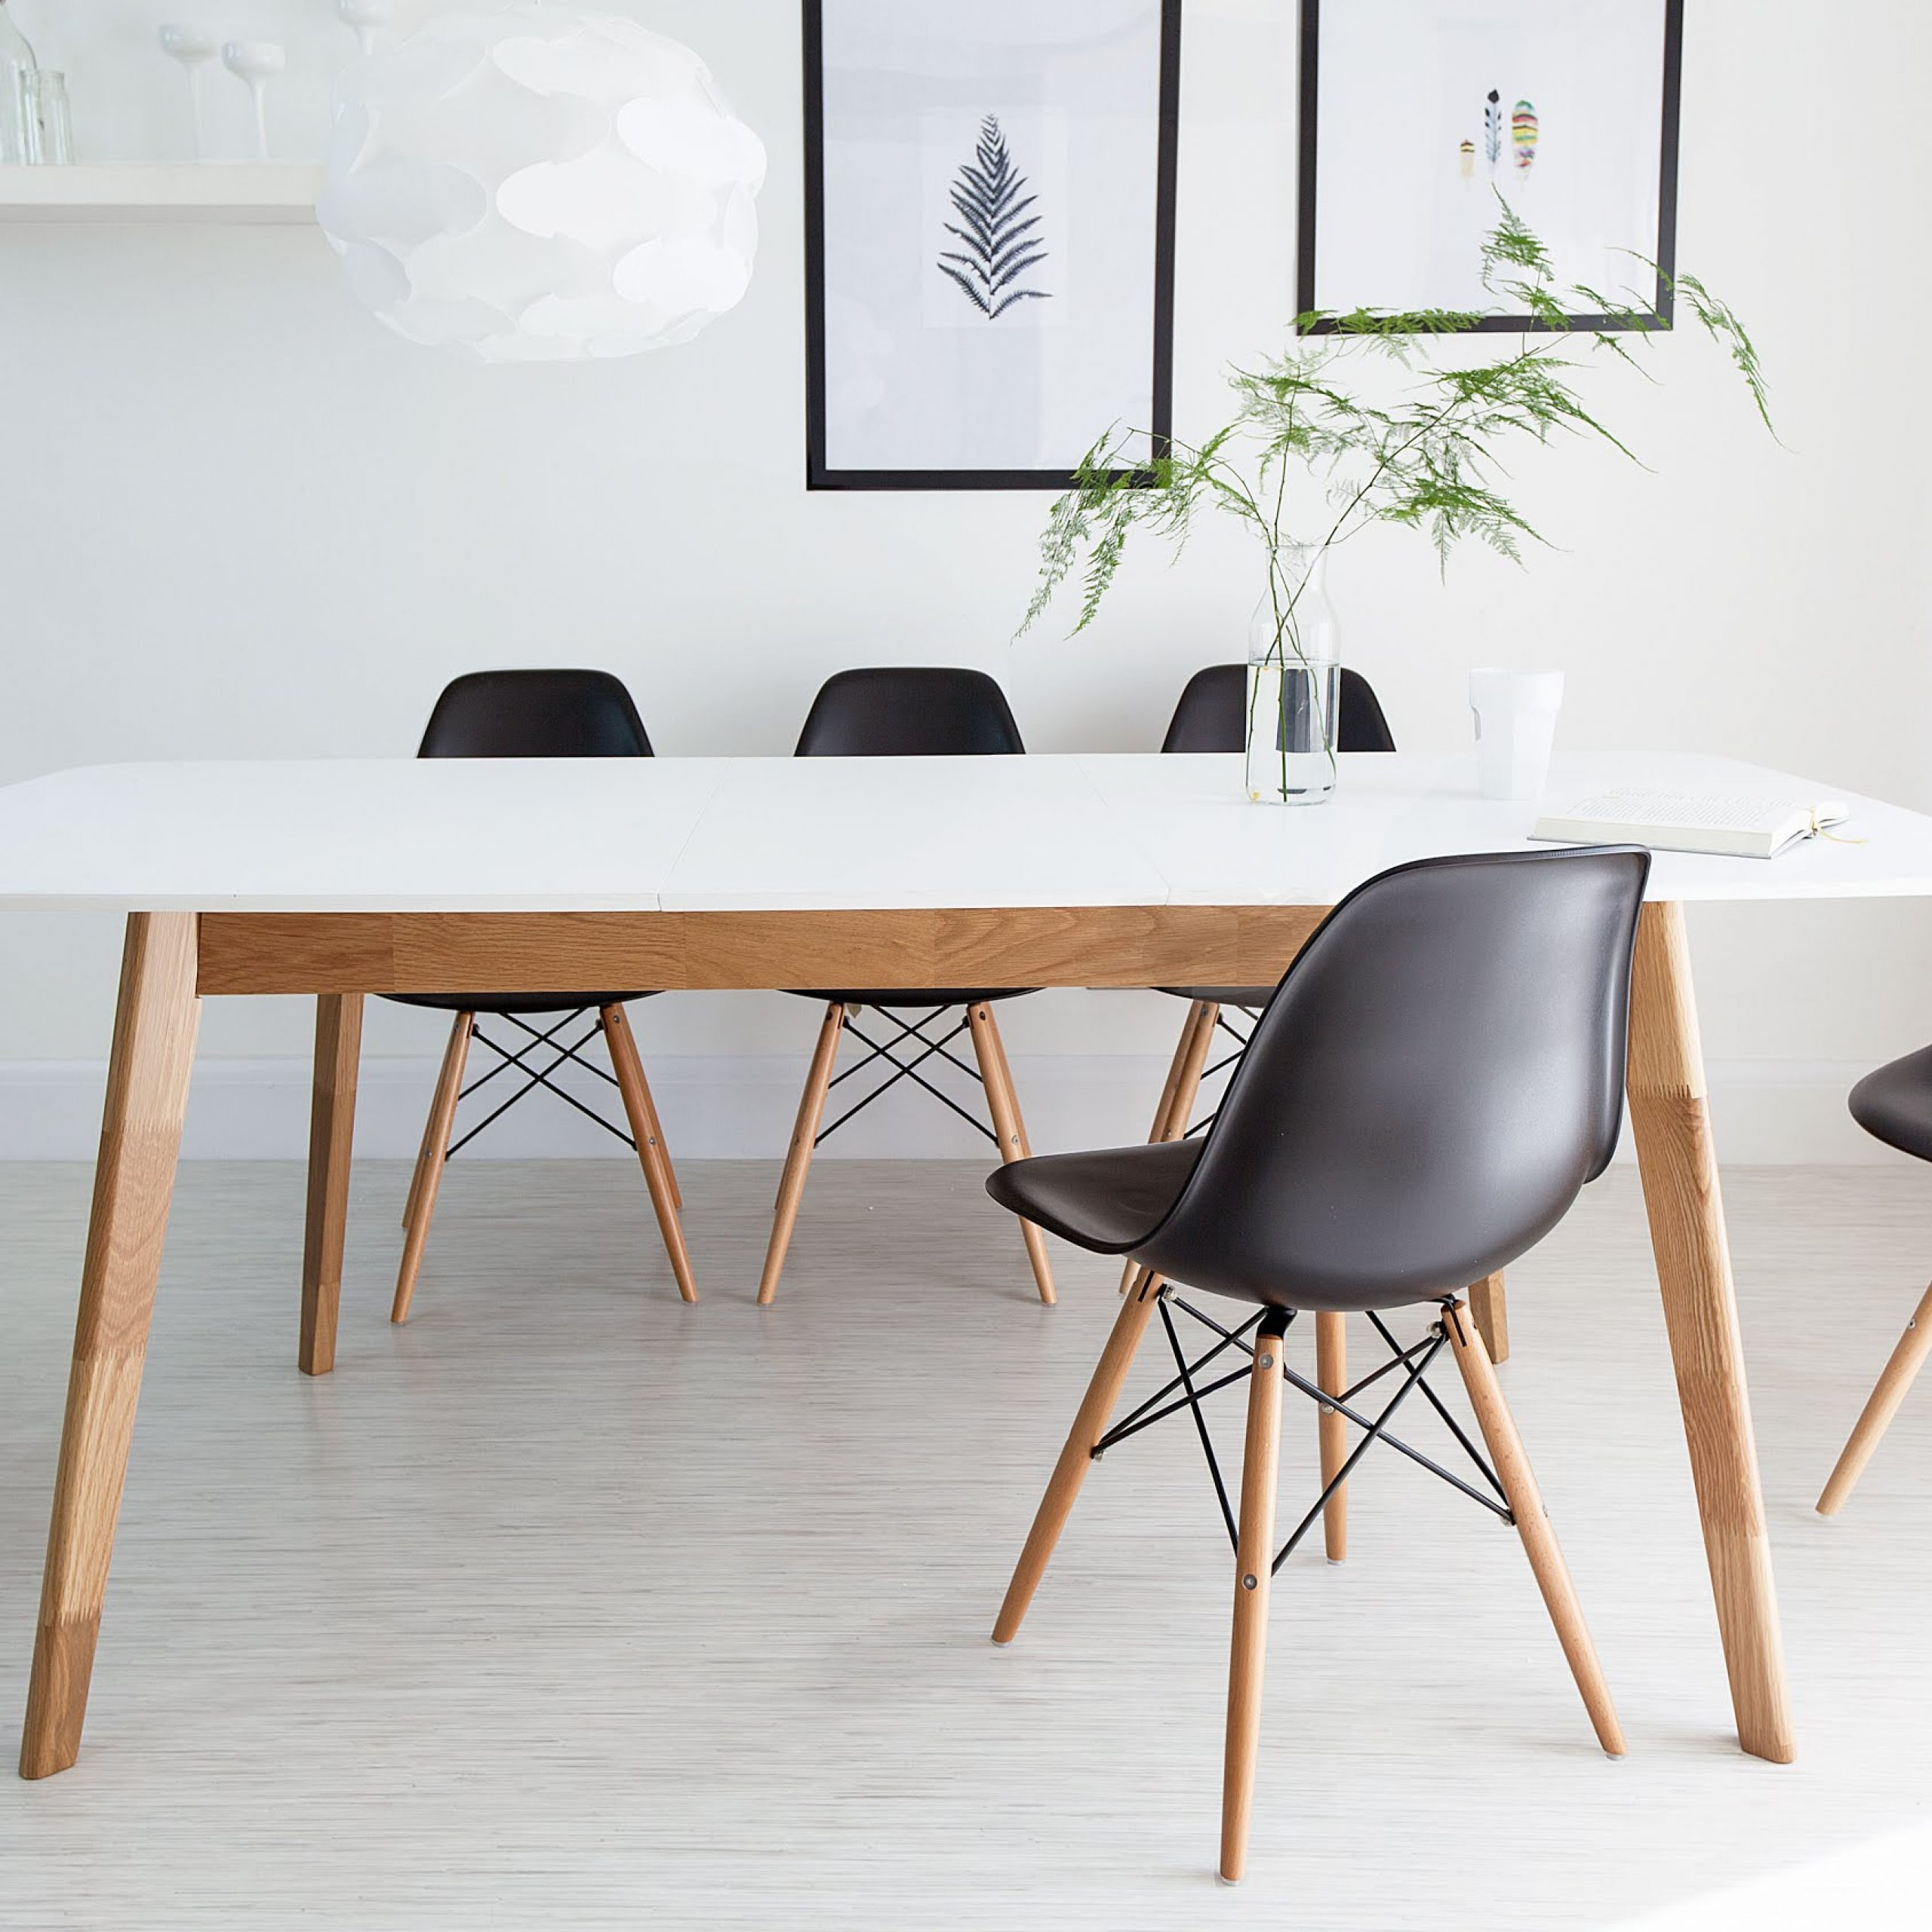 Elegant Eames Style Dining Table – Creative Design Ideas In Preferred Eames Style Dining Tables With Wooden Legs (View 14 of 30)